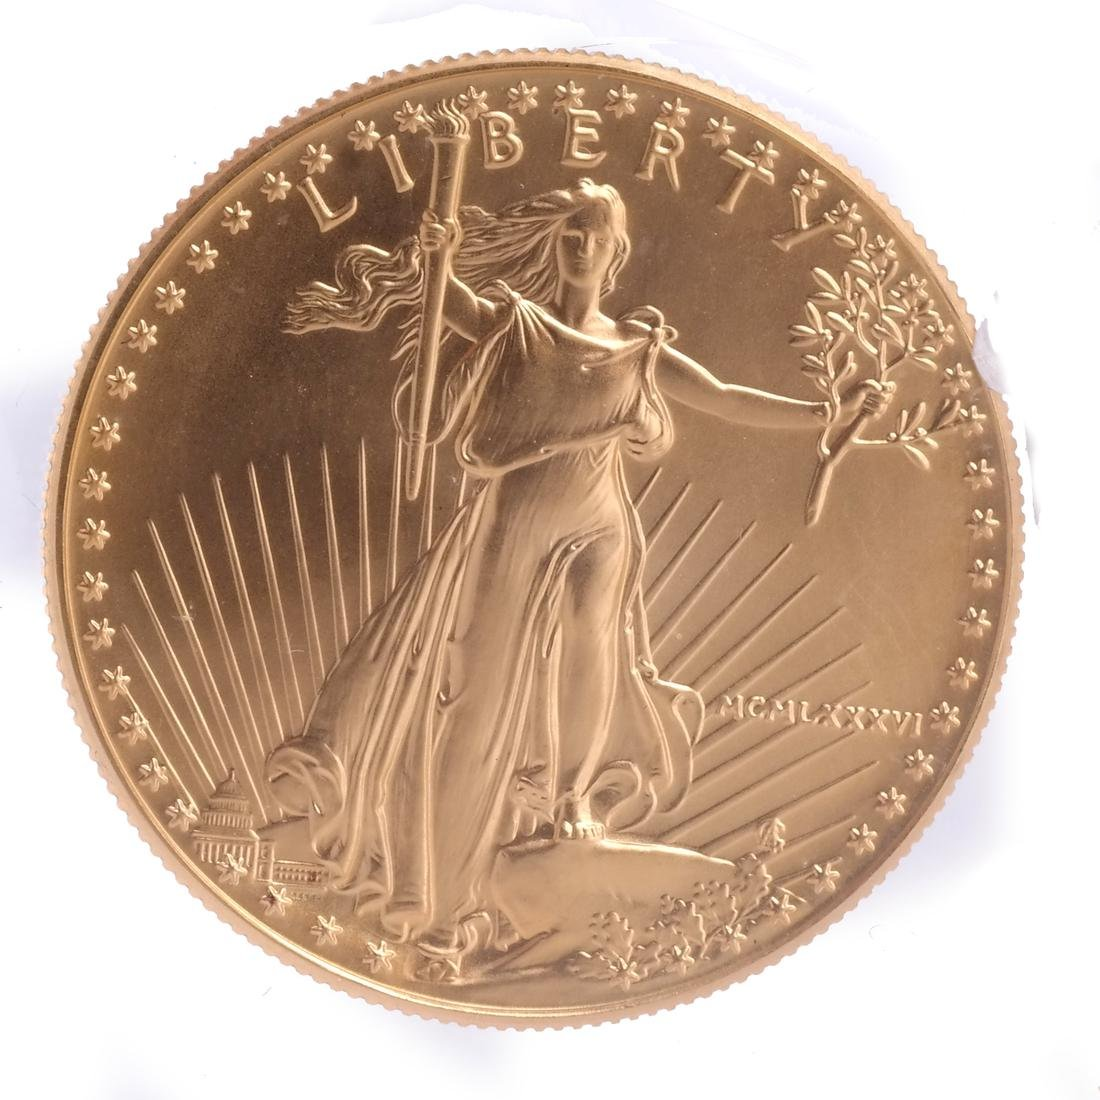 1986 Gold Eagle One-Ounce